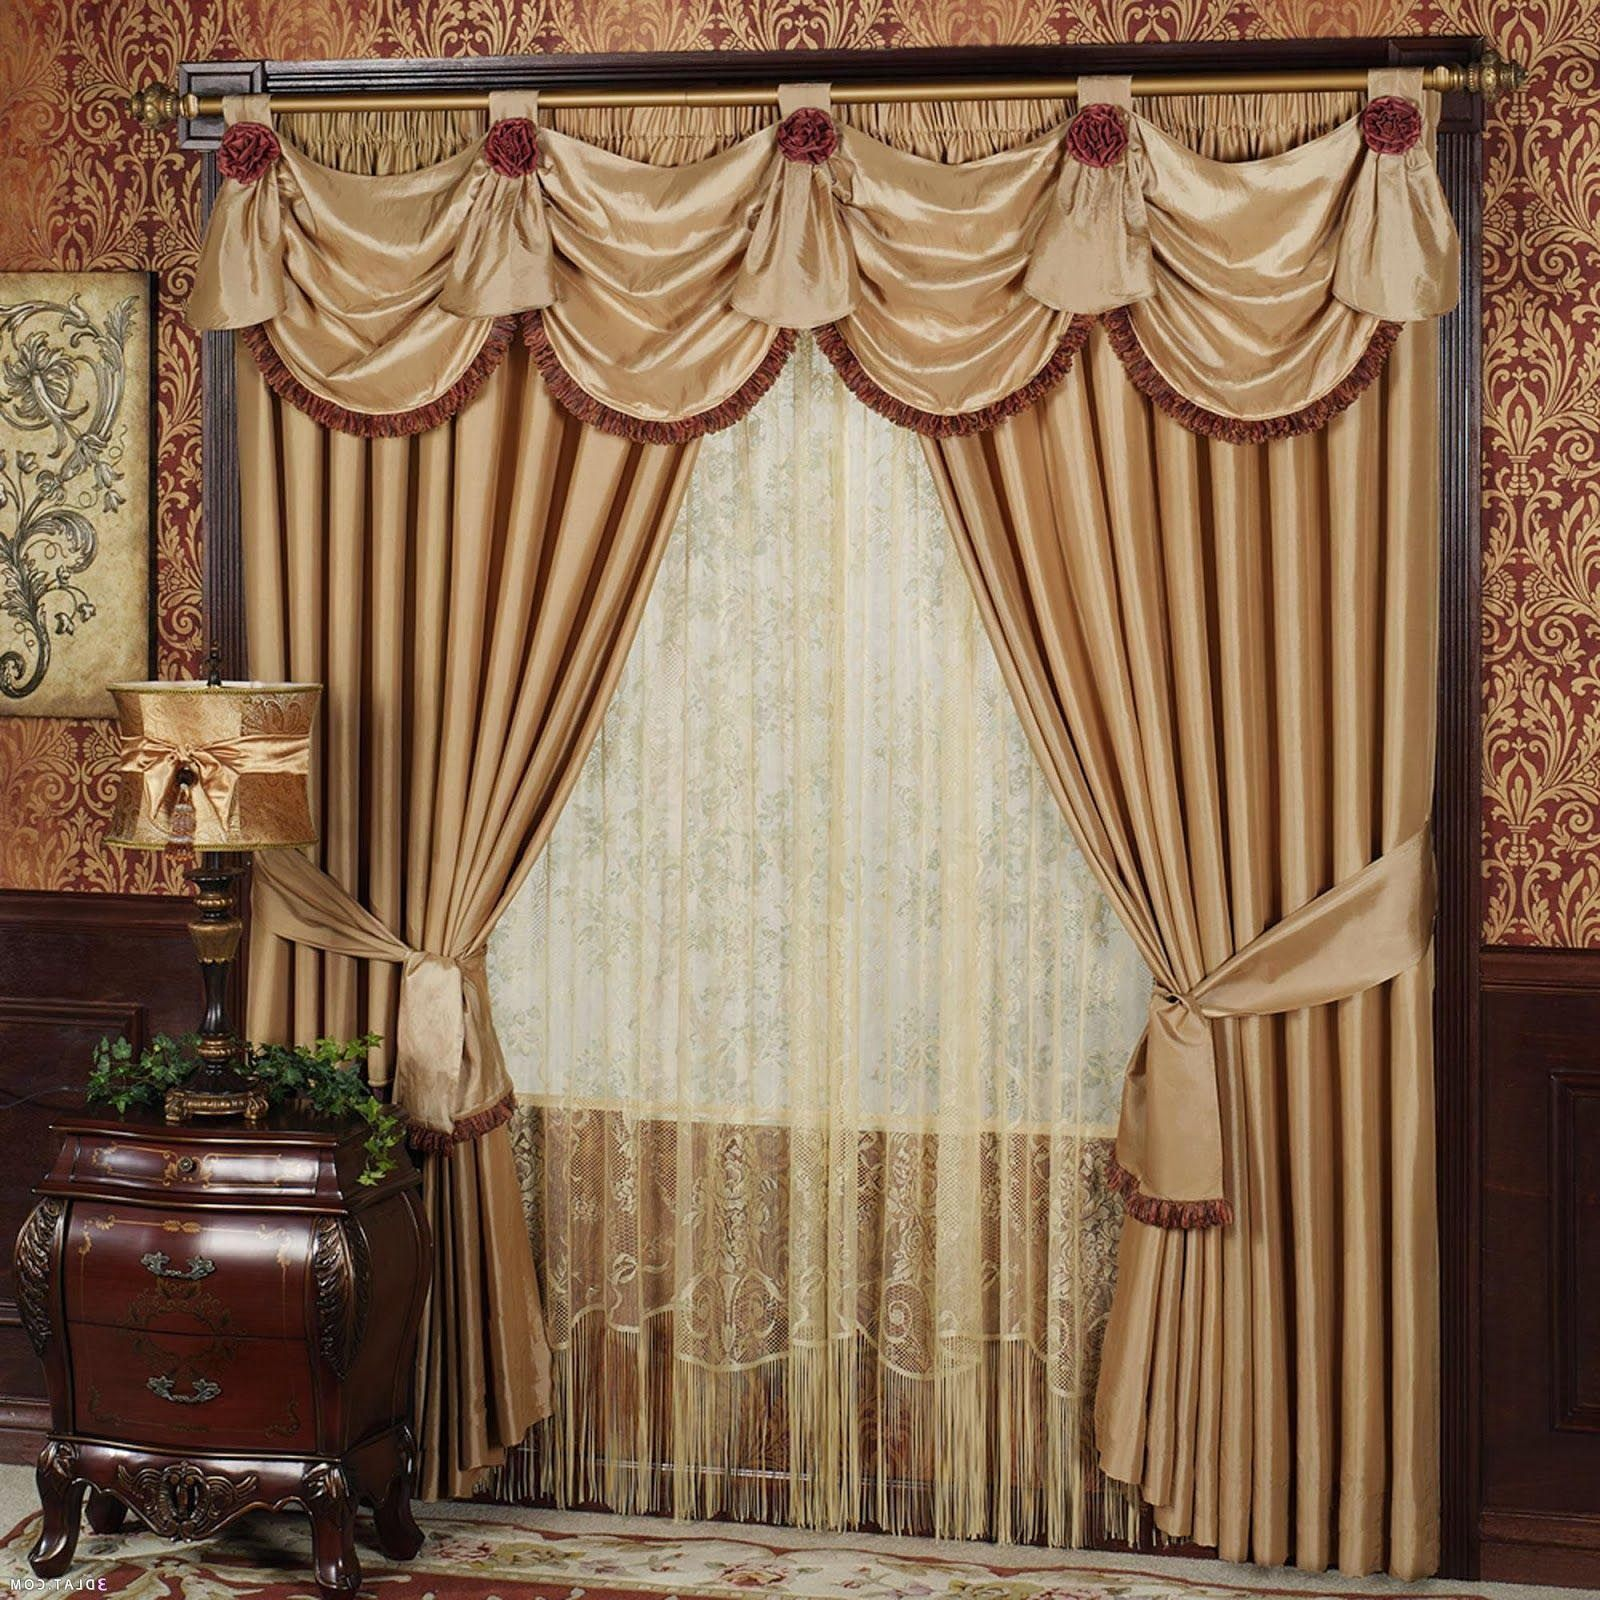 Living Room Drapes with Valances | Valances | Pinterest | Valance ...